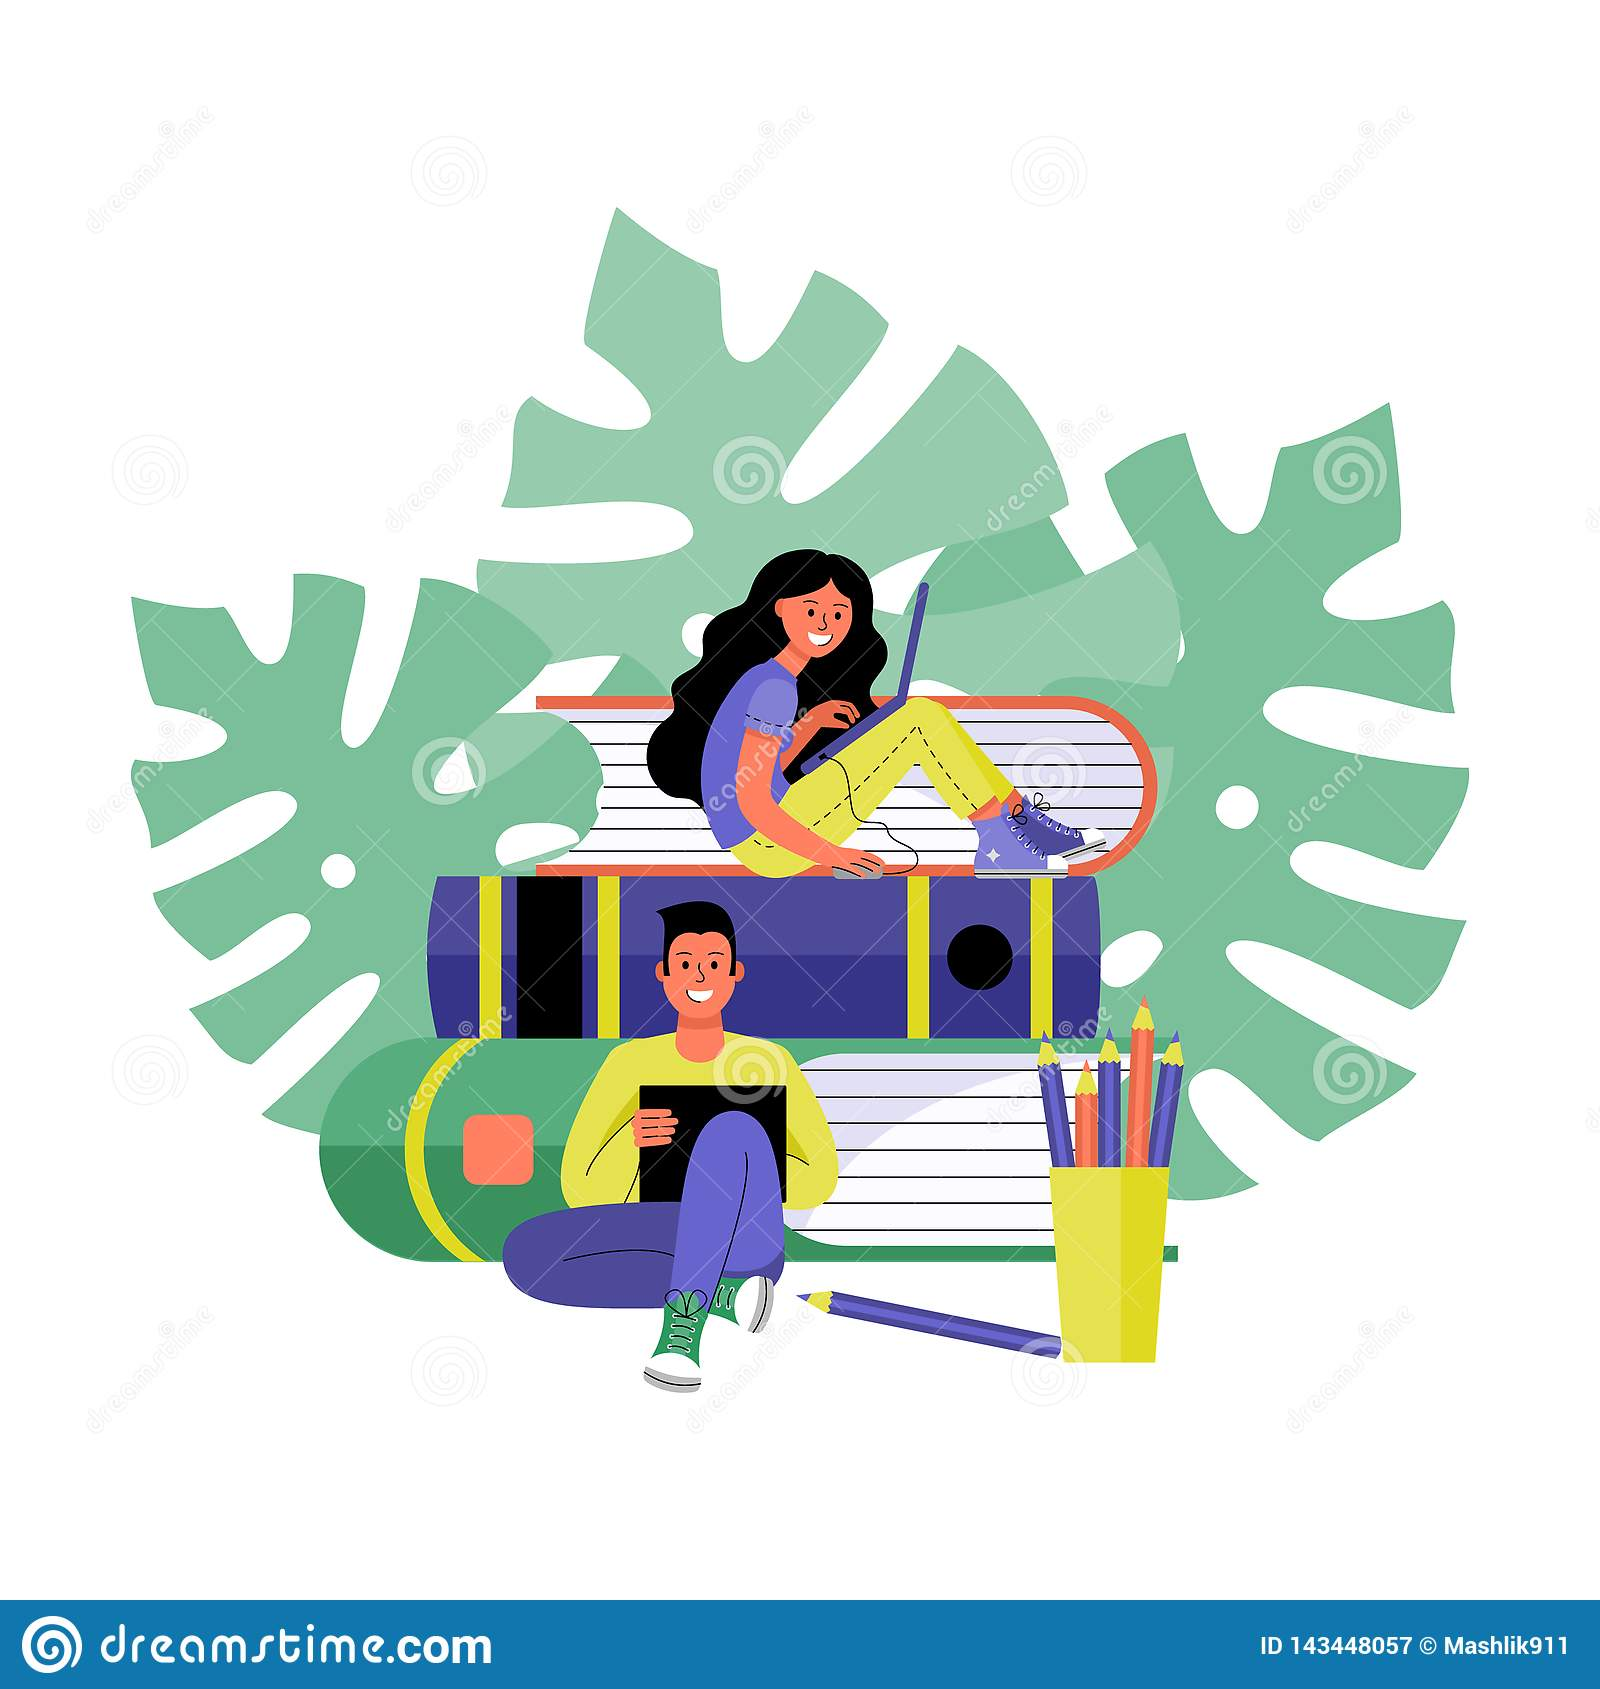 Man and woman with laptops. Online training and freelancing concept. Vector illustration.